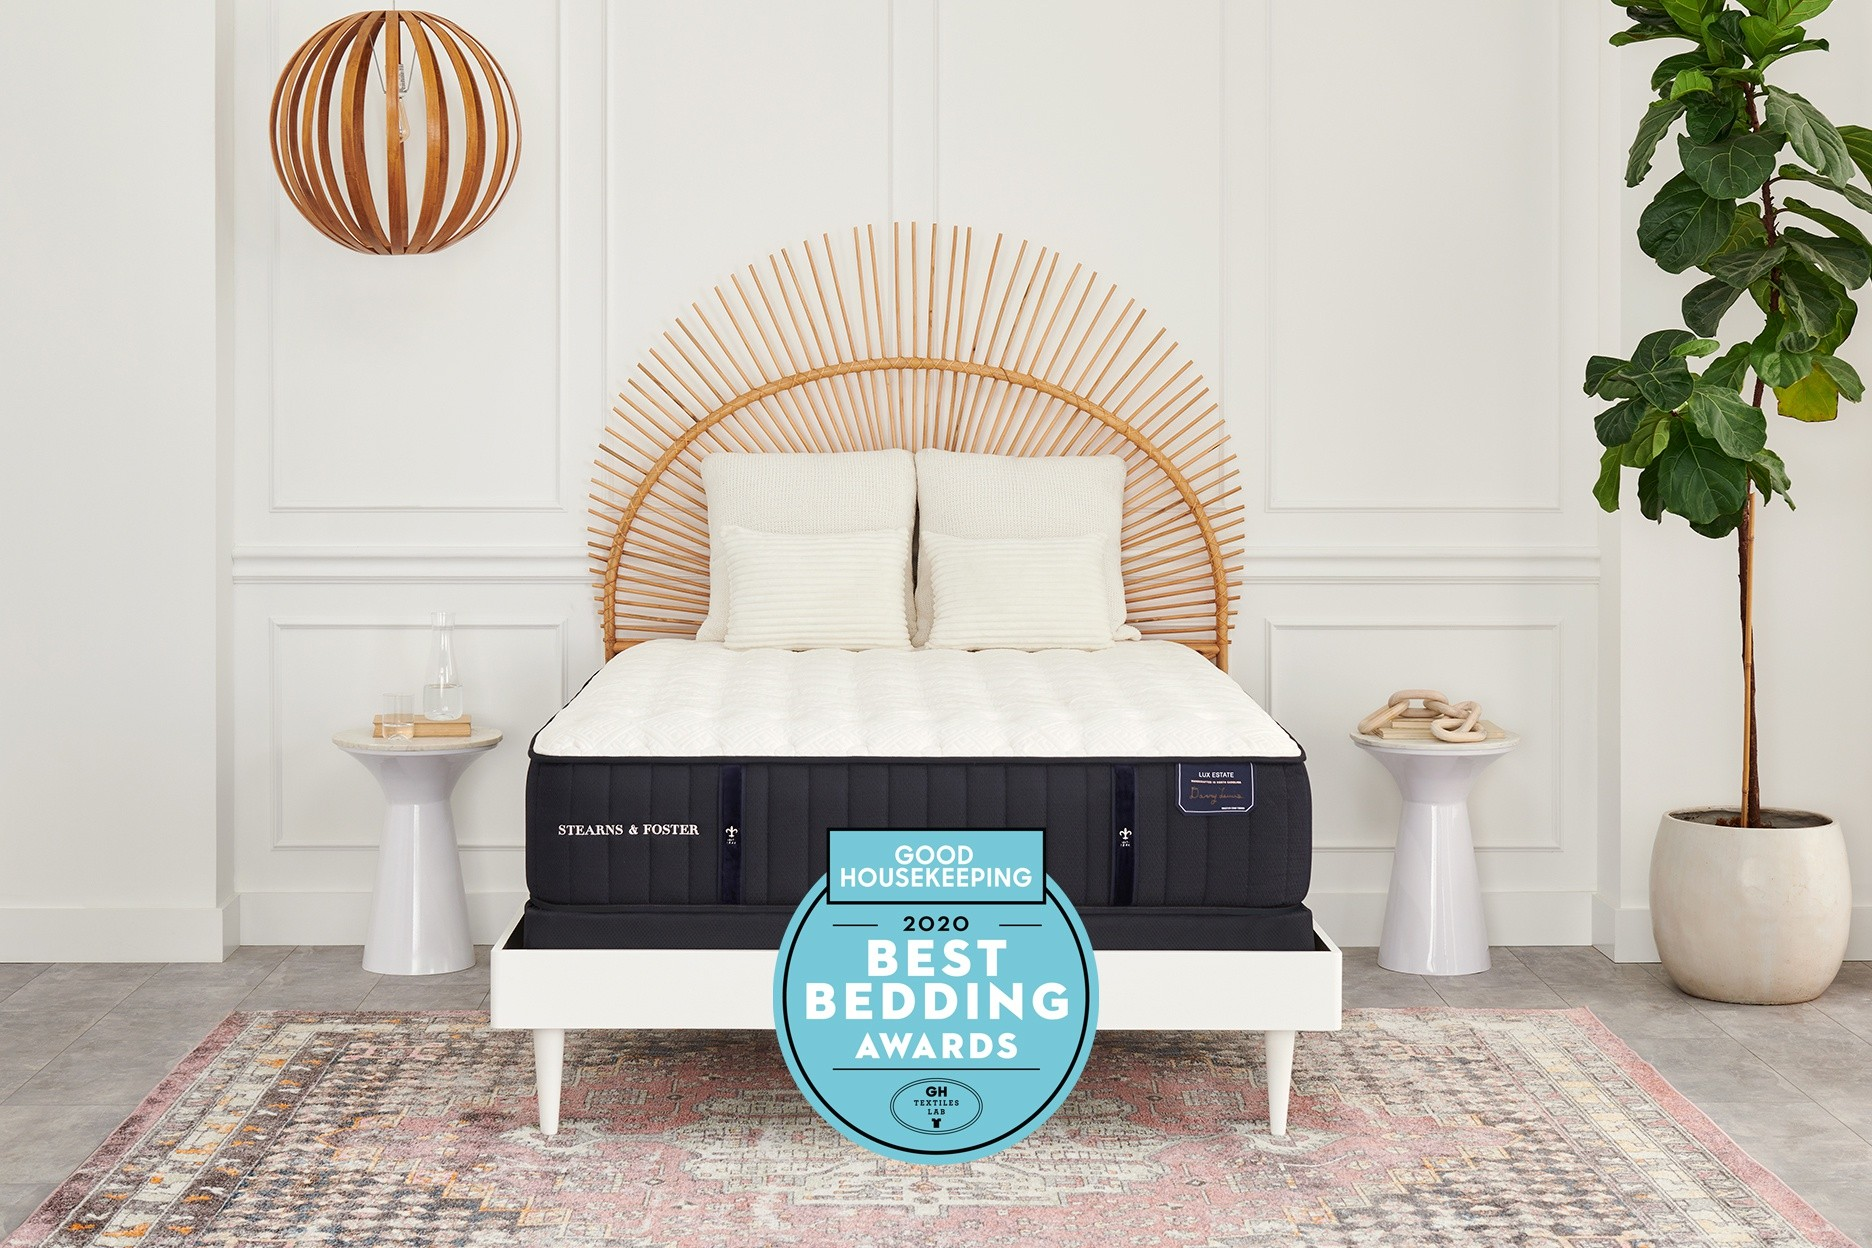 SF_Lux_Estate-best-bedding-award.jpg